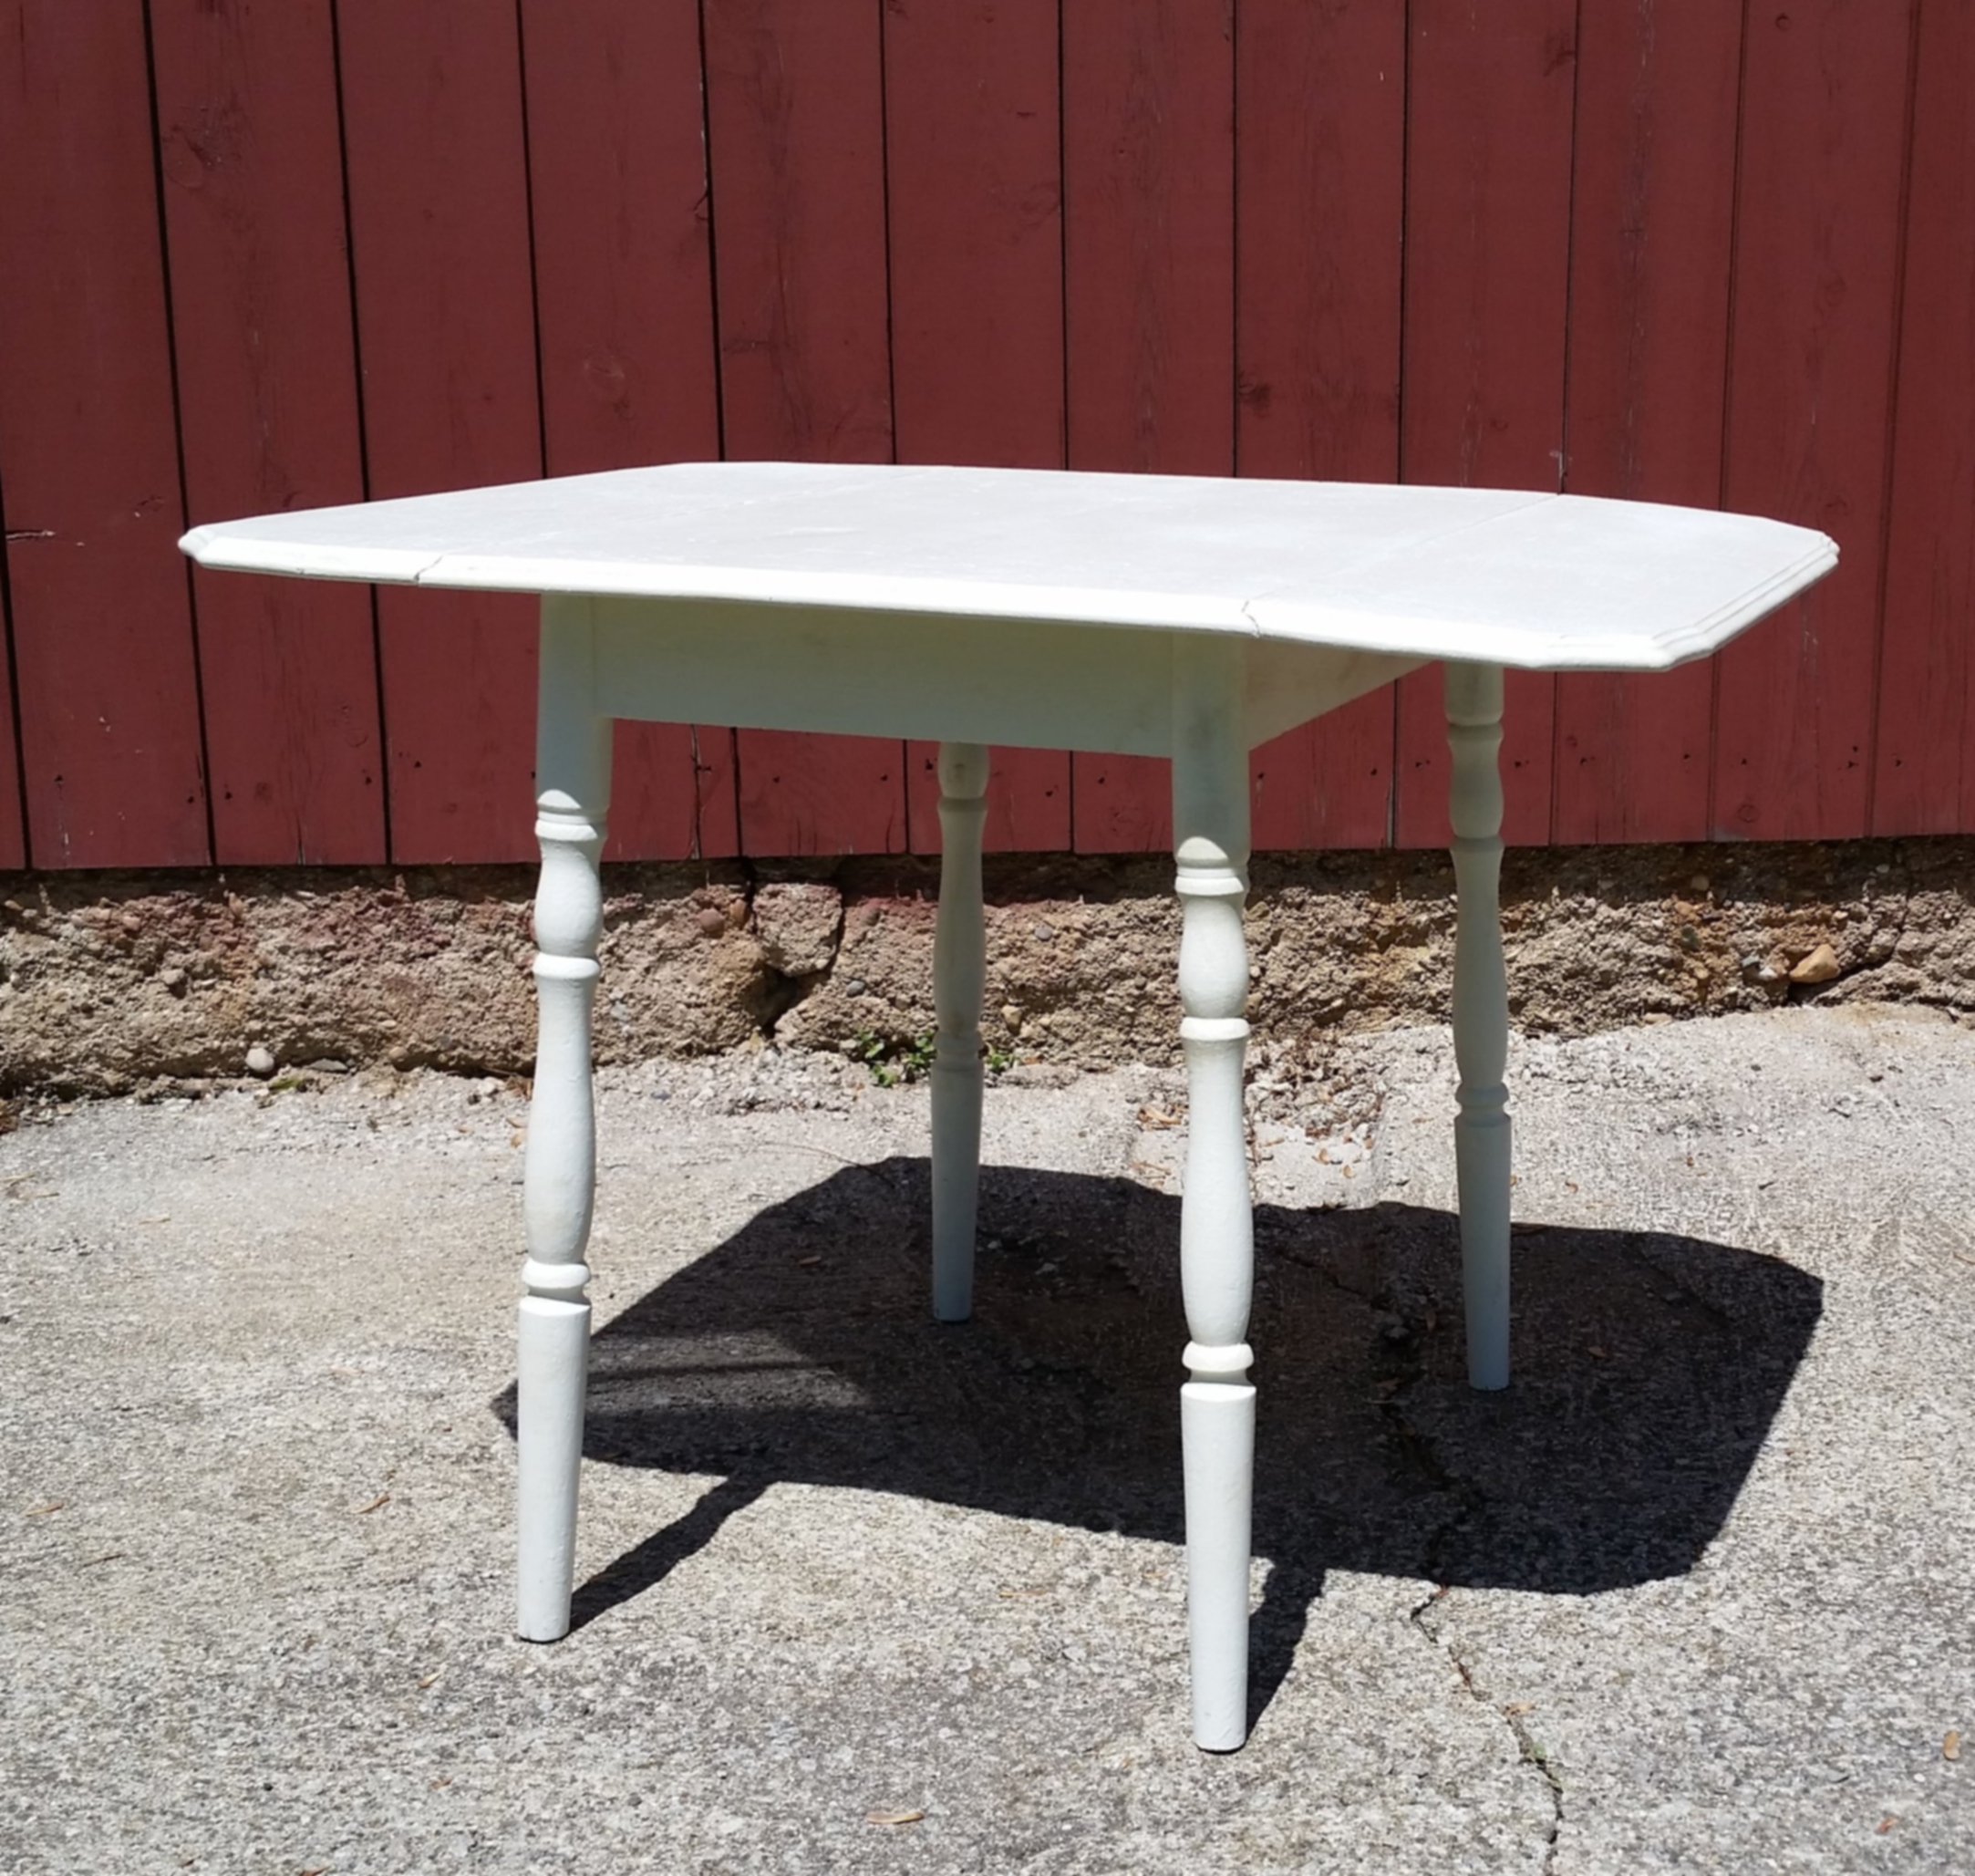 Drop Leaf Table - Description ~ small table with 2 drop leavesQuantity ~ 1Rental Price ~ $20